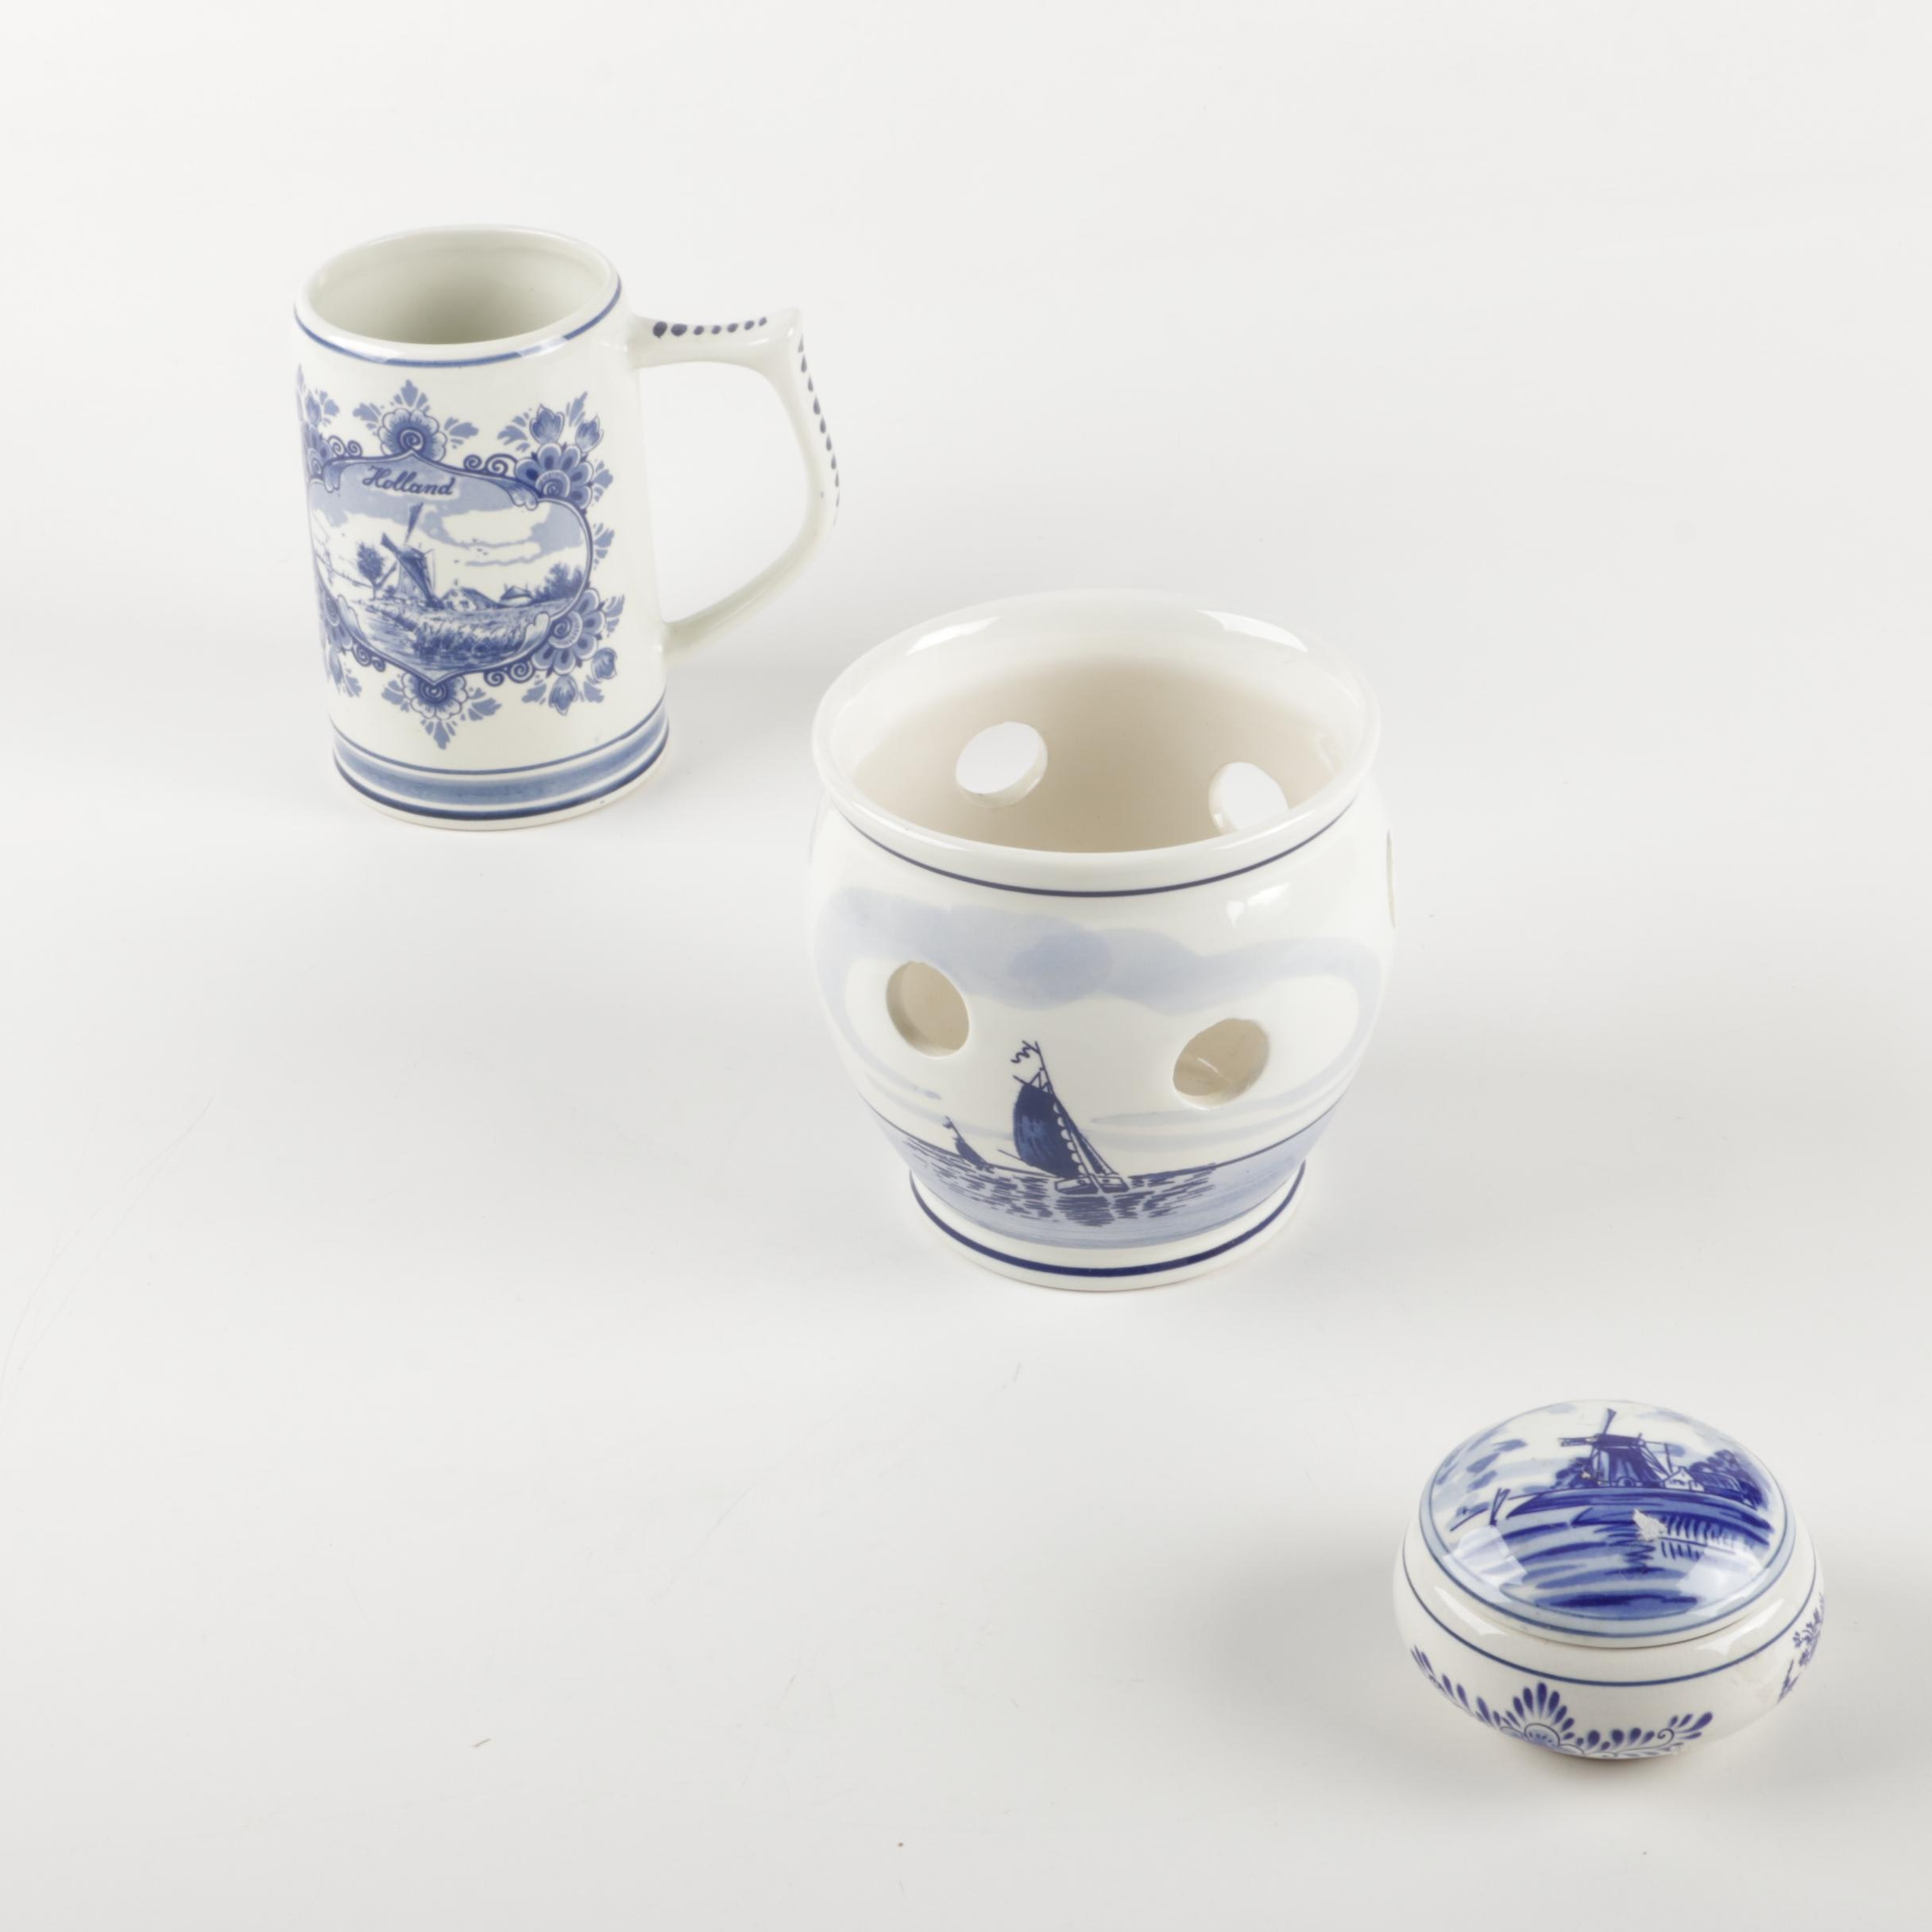 Delft Blue Windmill Ceramic Candle Holder, Mug and Trinket Box